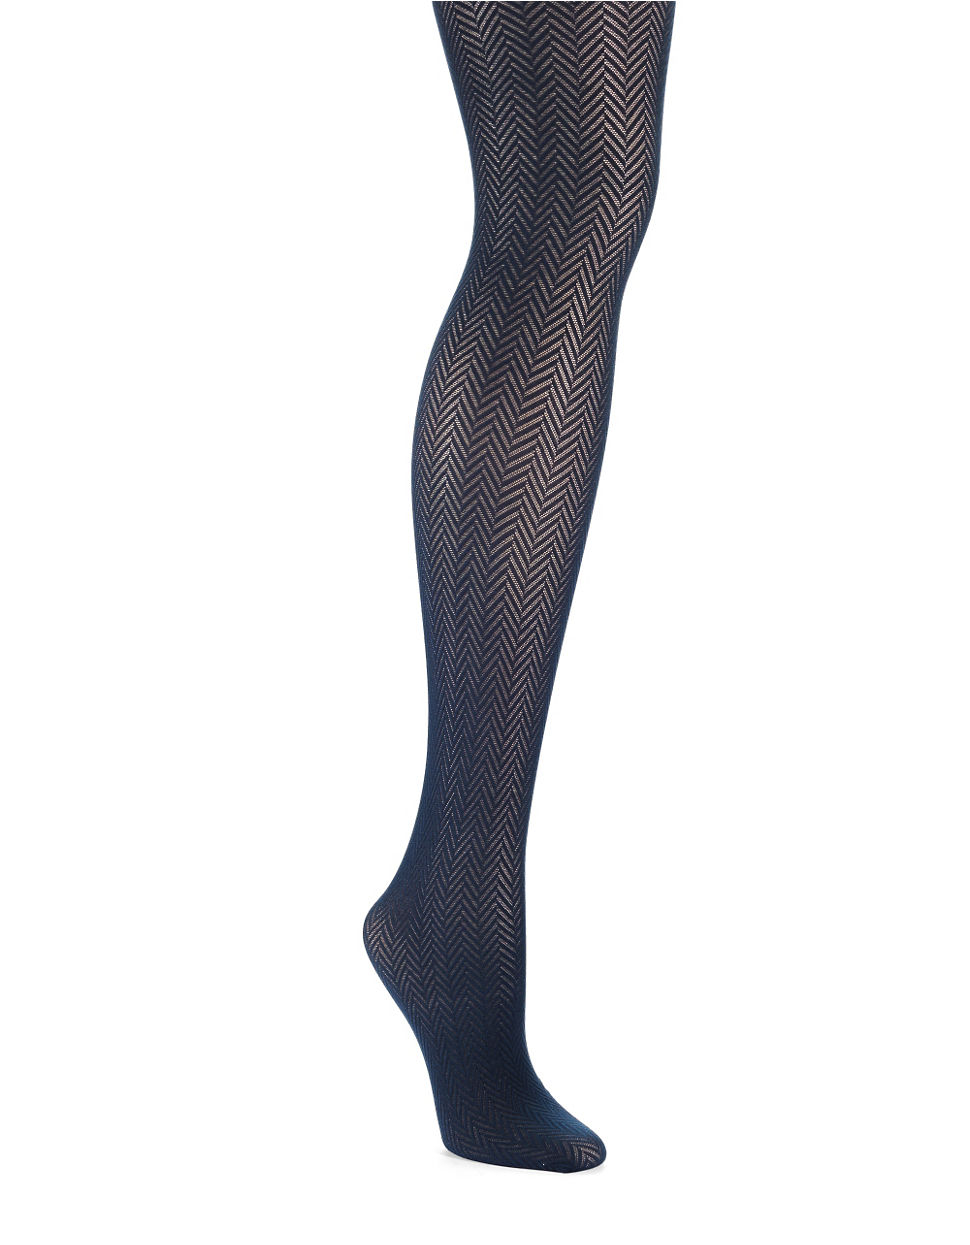 patterned tights related keywords patterned tights long